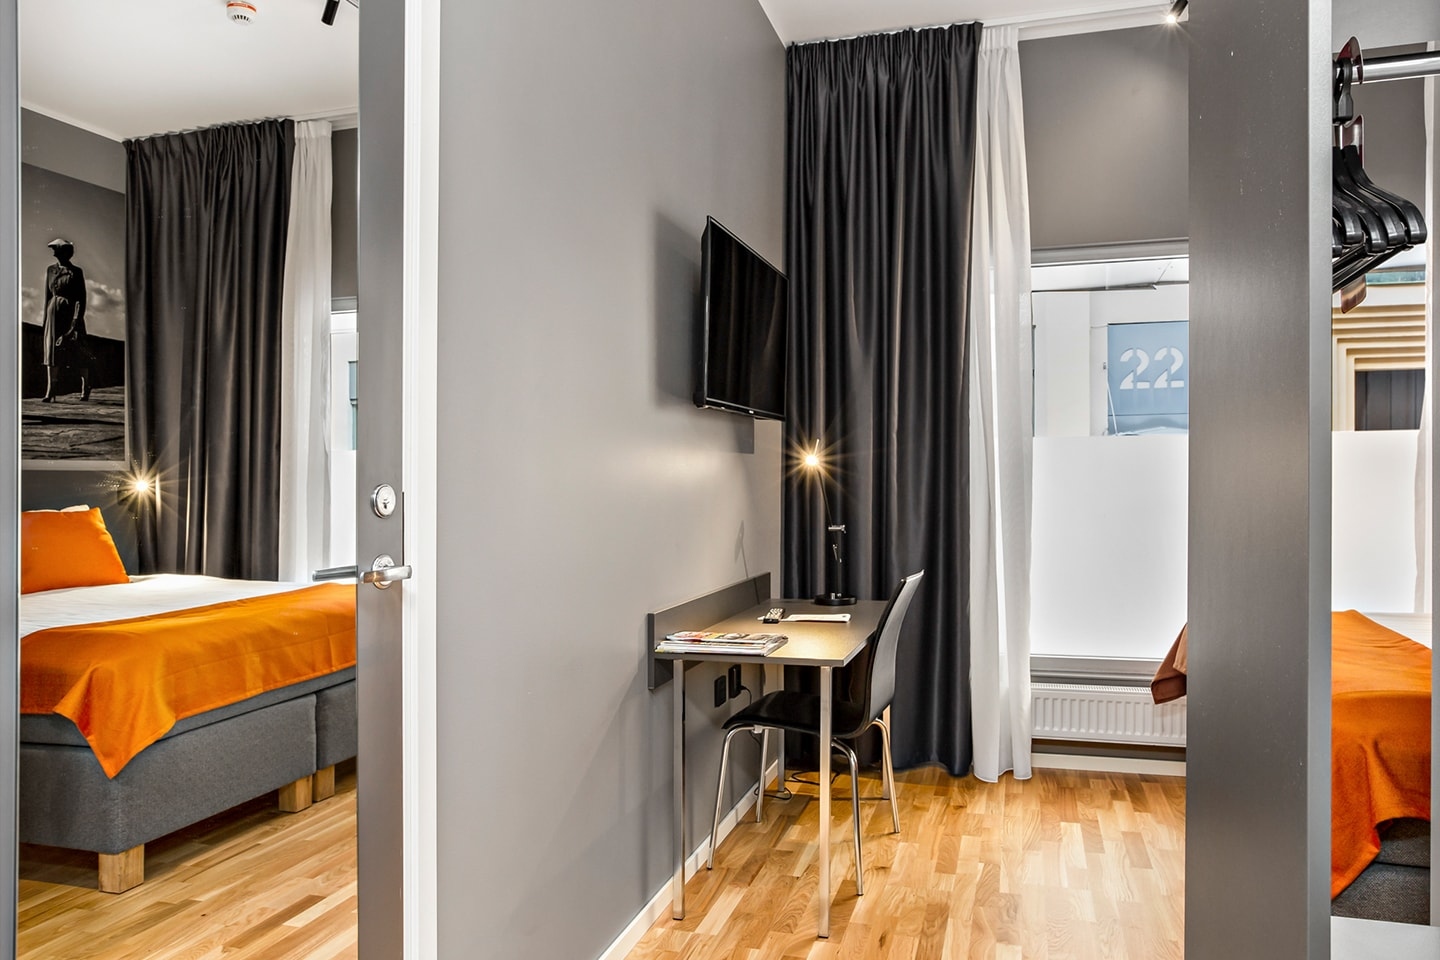 Overnatting for 2 personer på Connect Hotel City i Stockholm